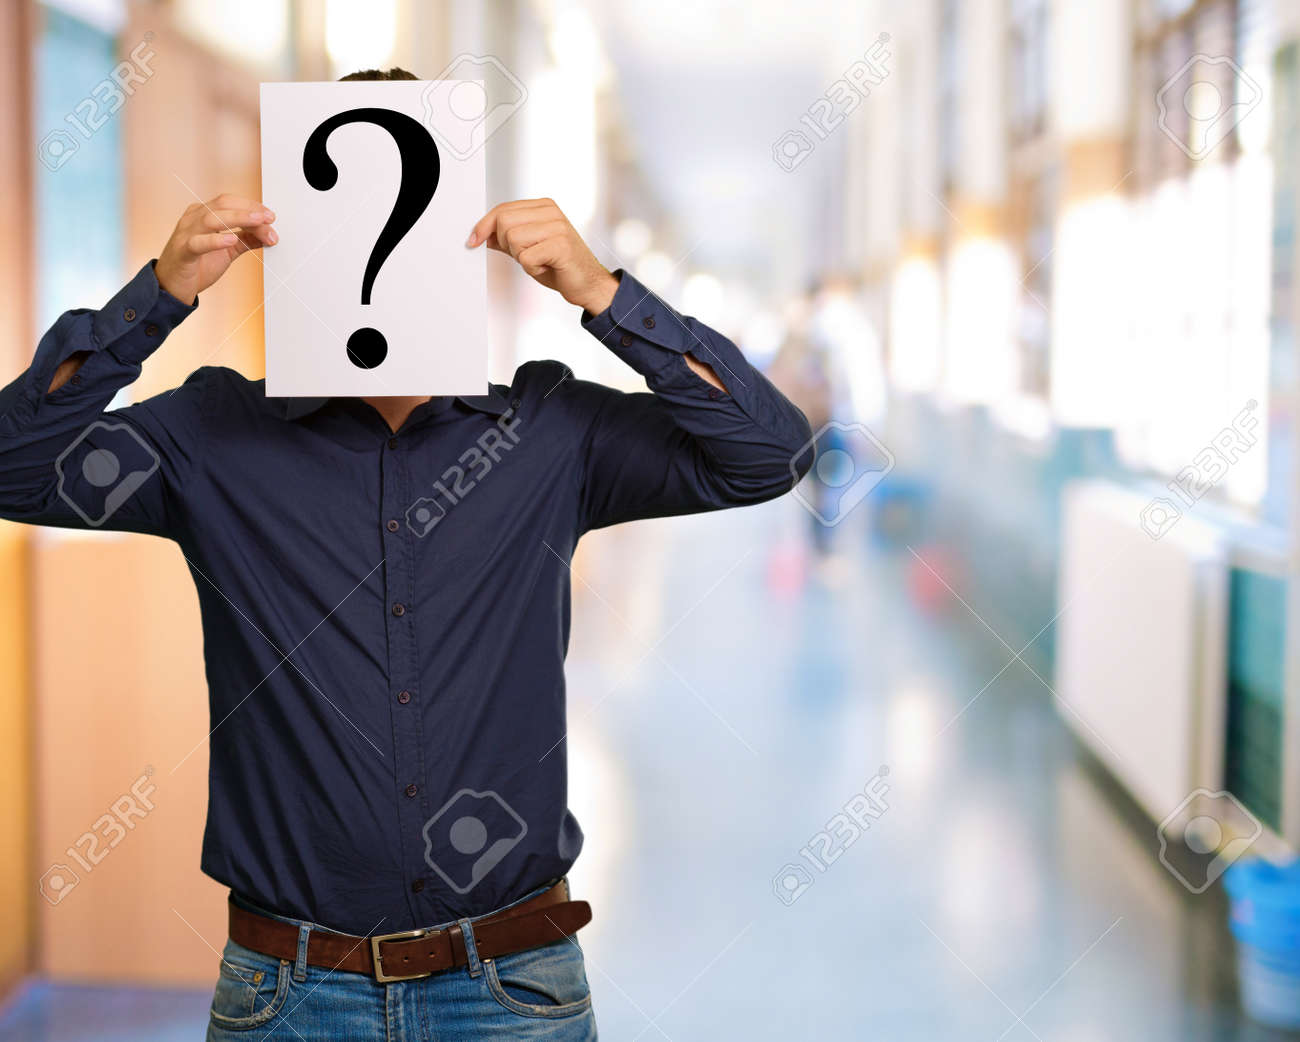 Man standing with a question mark board, outdoor - 16290767